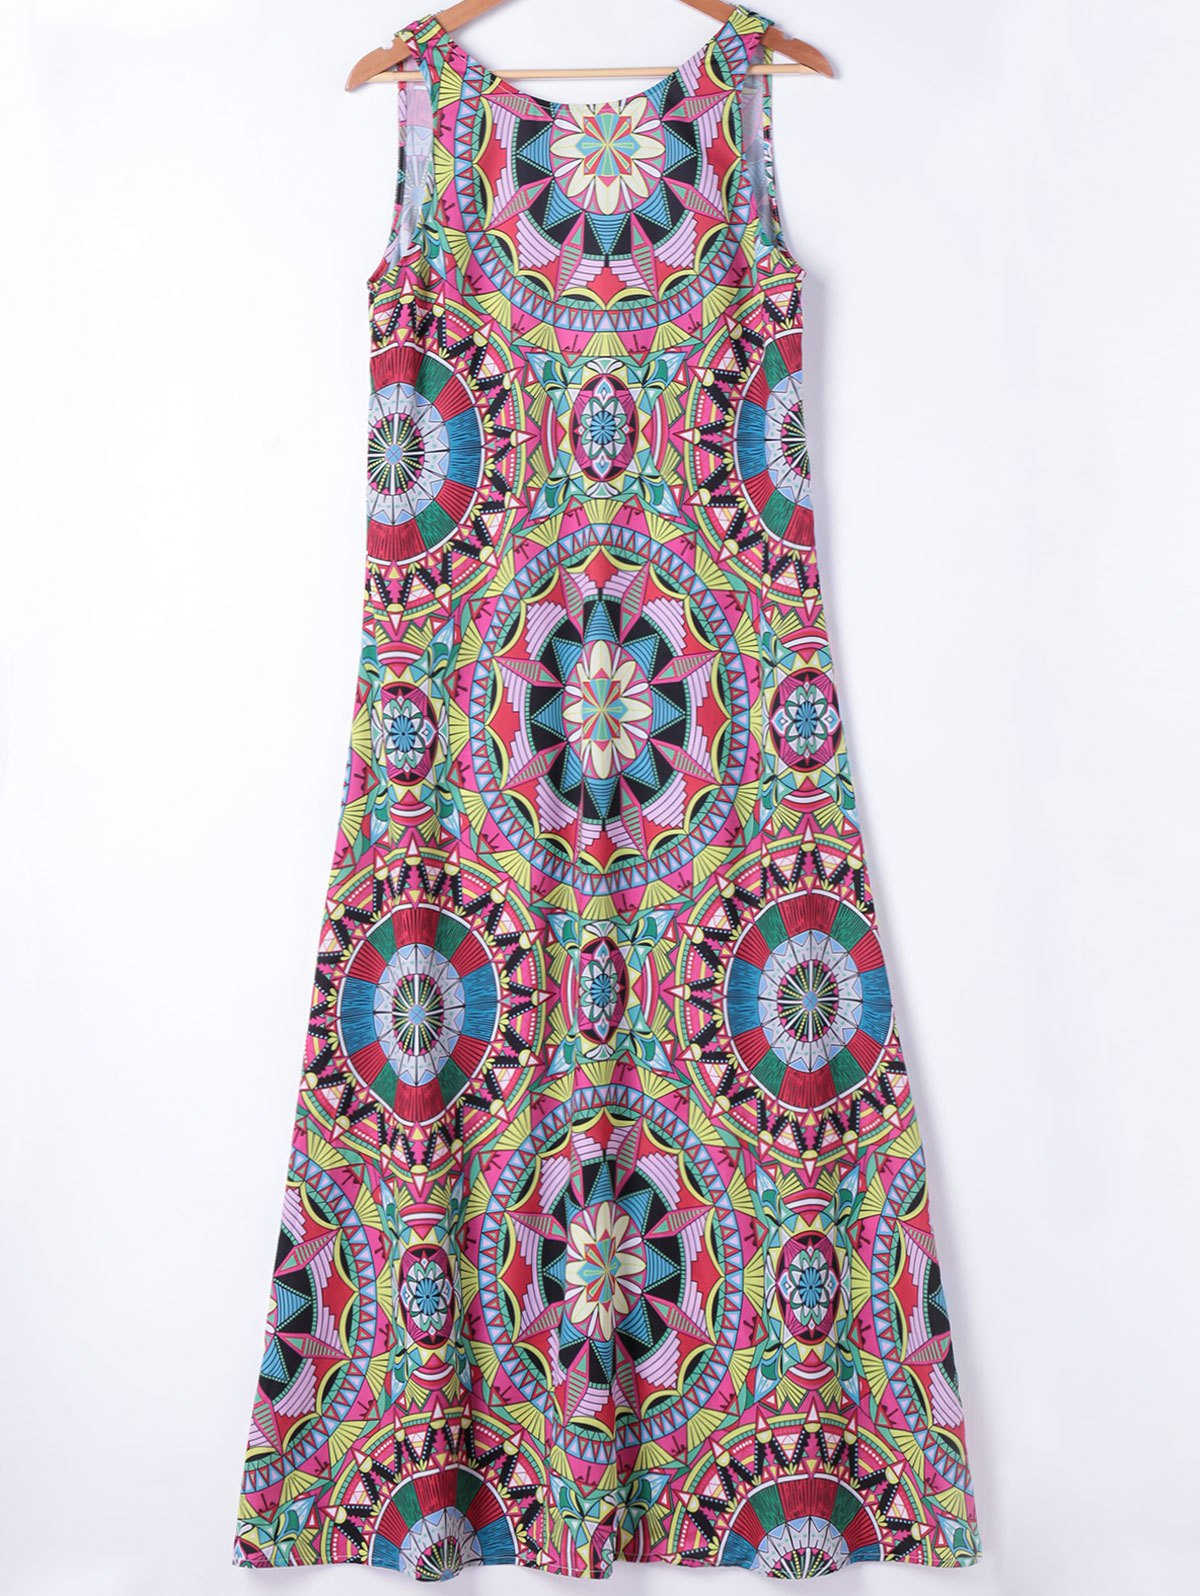 Ethnic Style Womens's Slimming Round Neck A-Line Dress - COLORMIX L